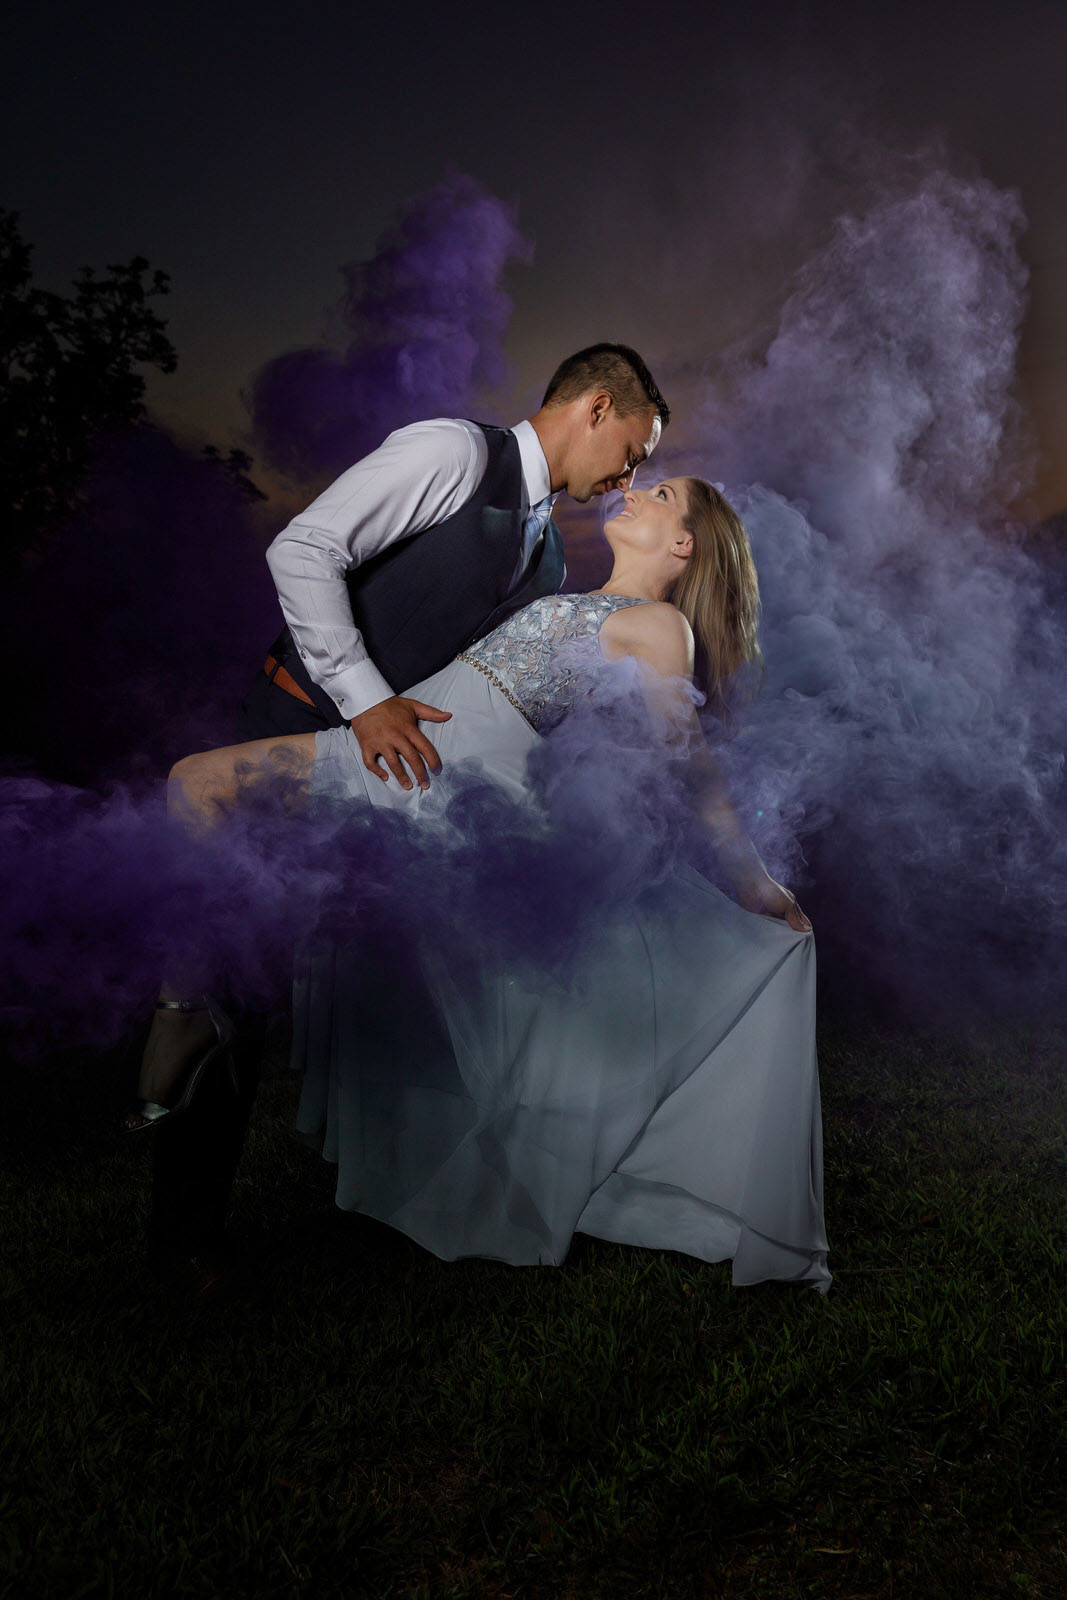 Elegantly dressed couple dipping at sunset with purple smoke